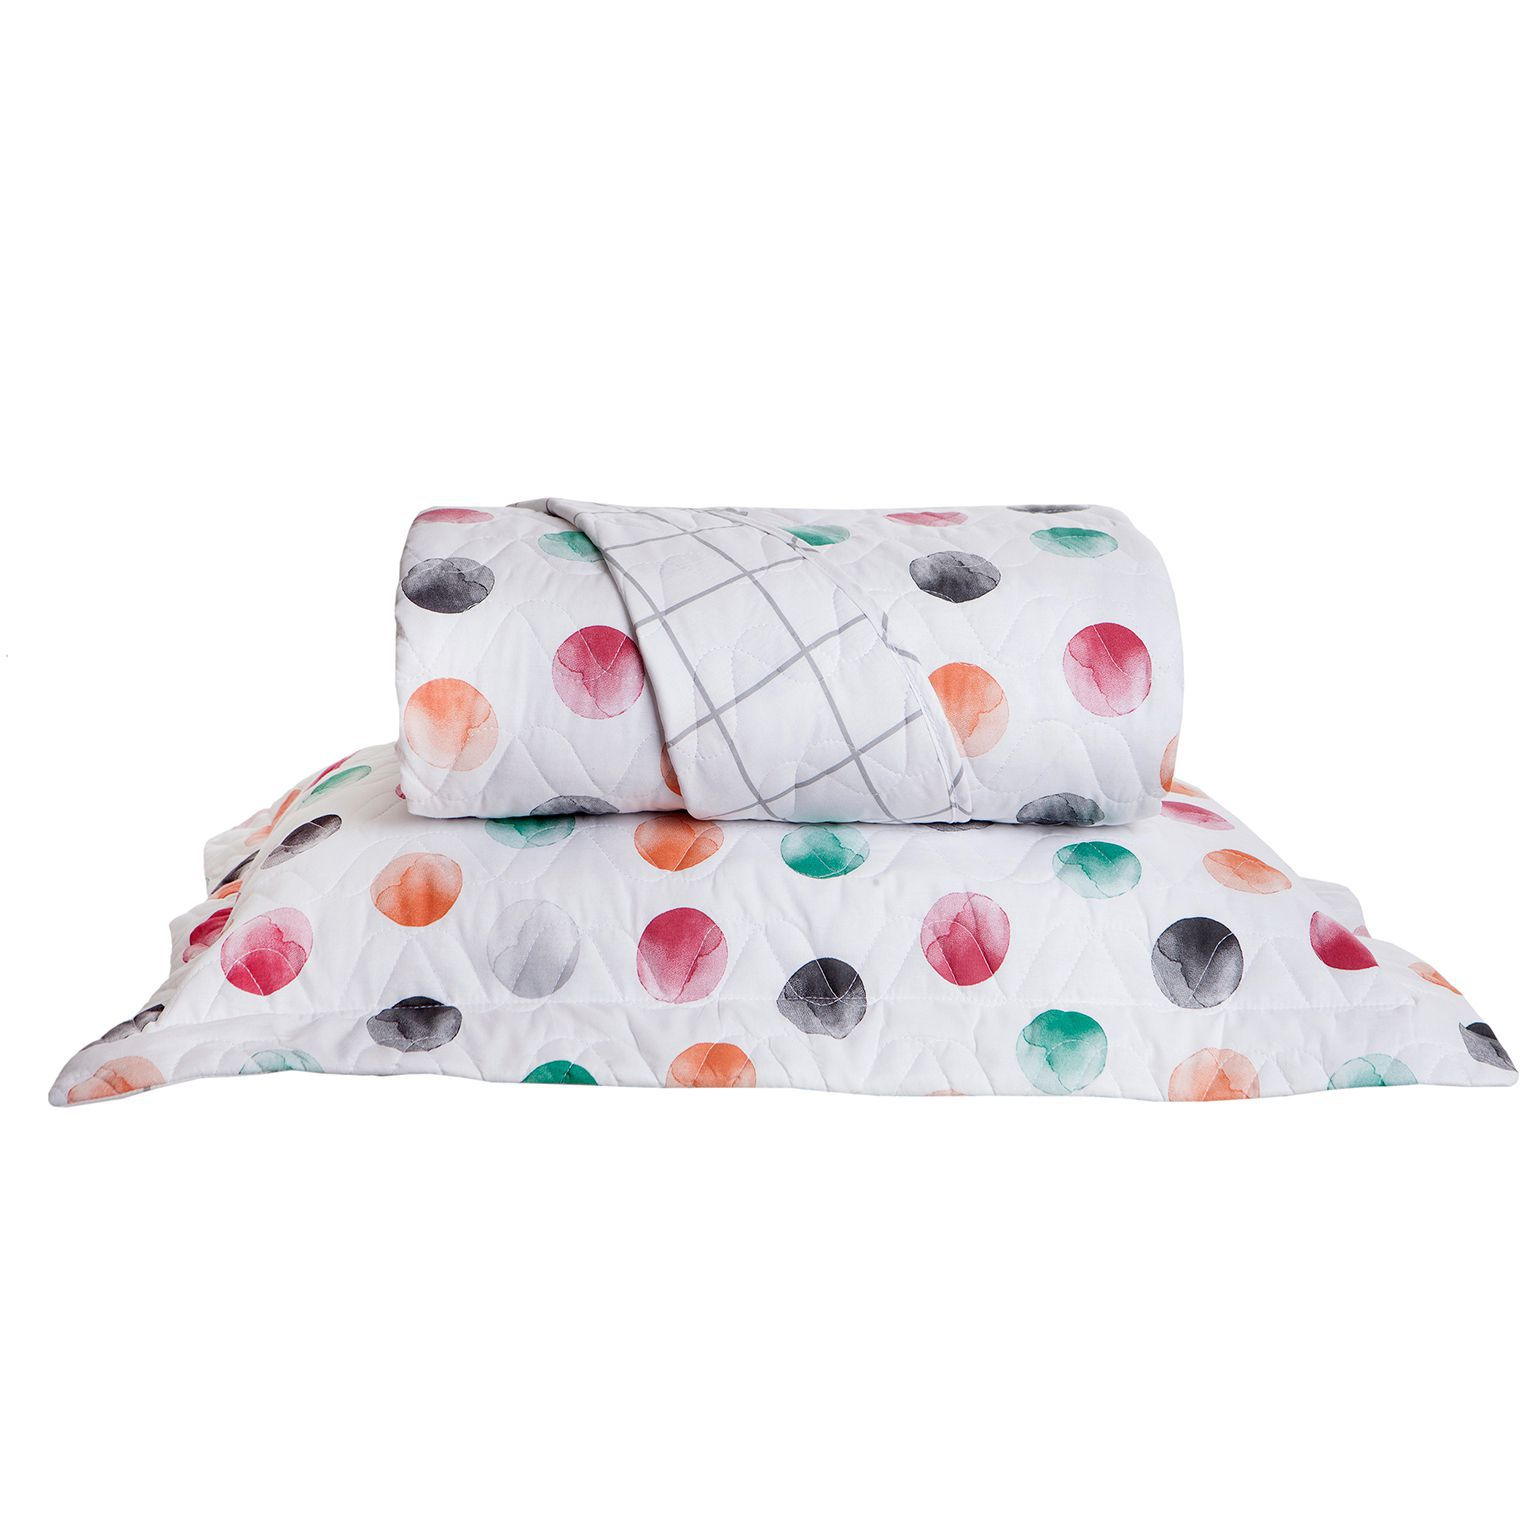 Kit Colcha Matelassê Dupla Face Home Design Petit